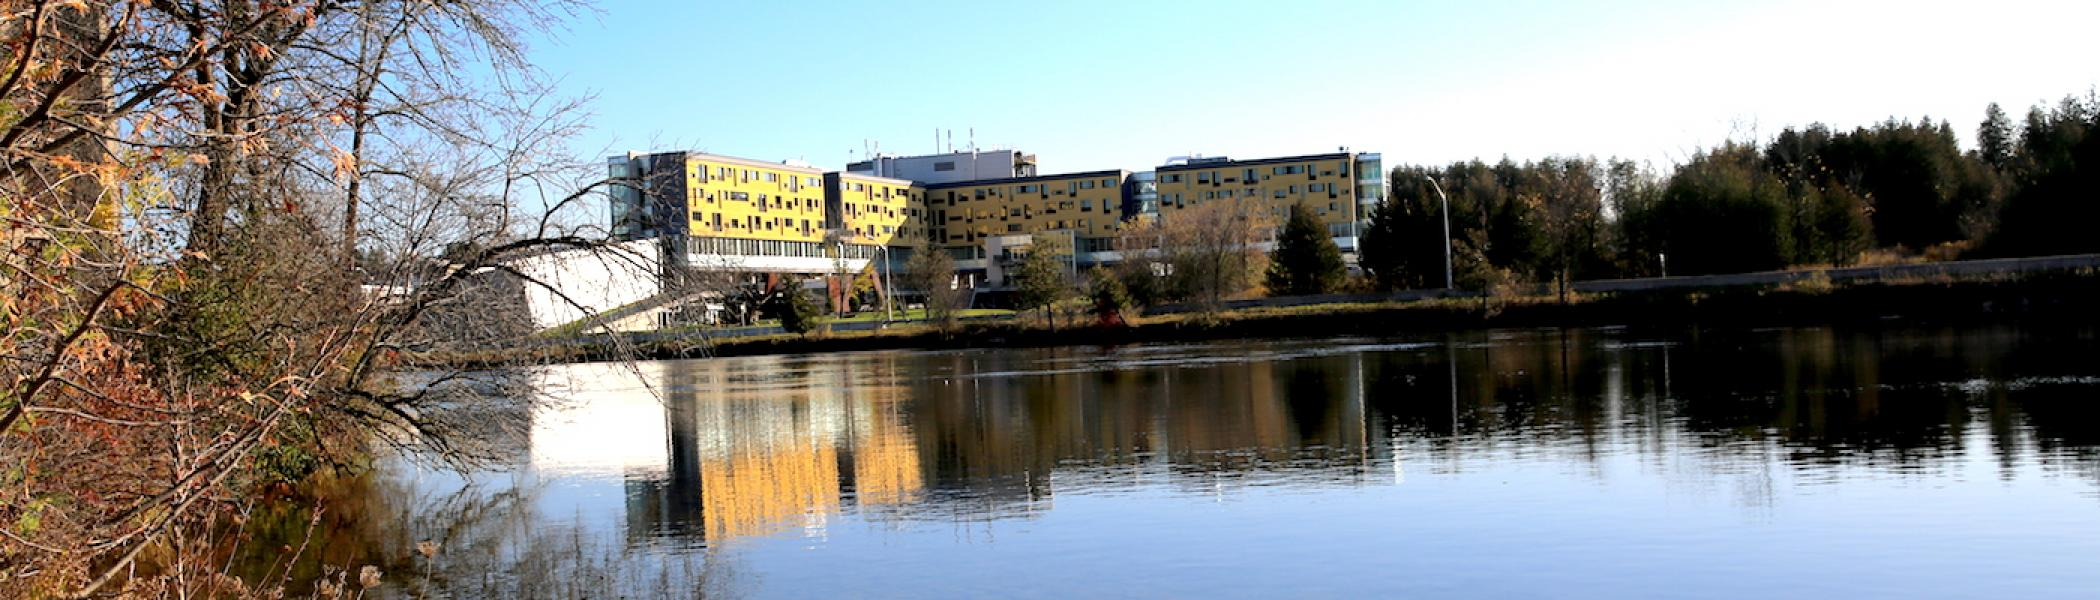 An exterior view of Gzowski College with the river in front of it